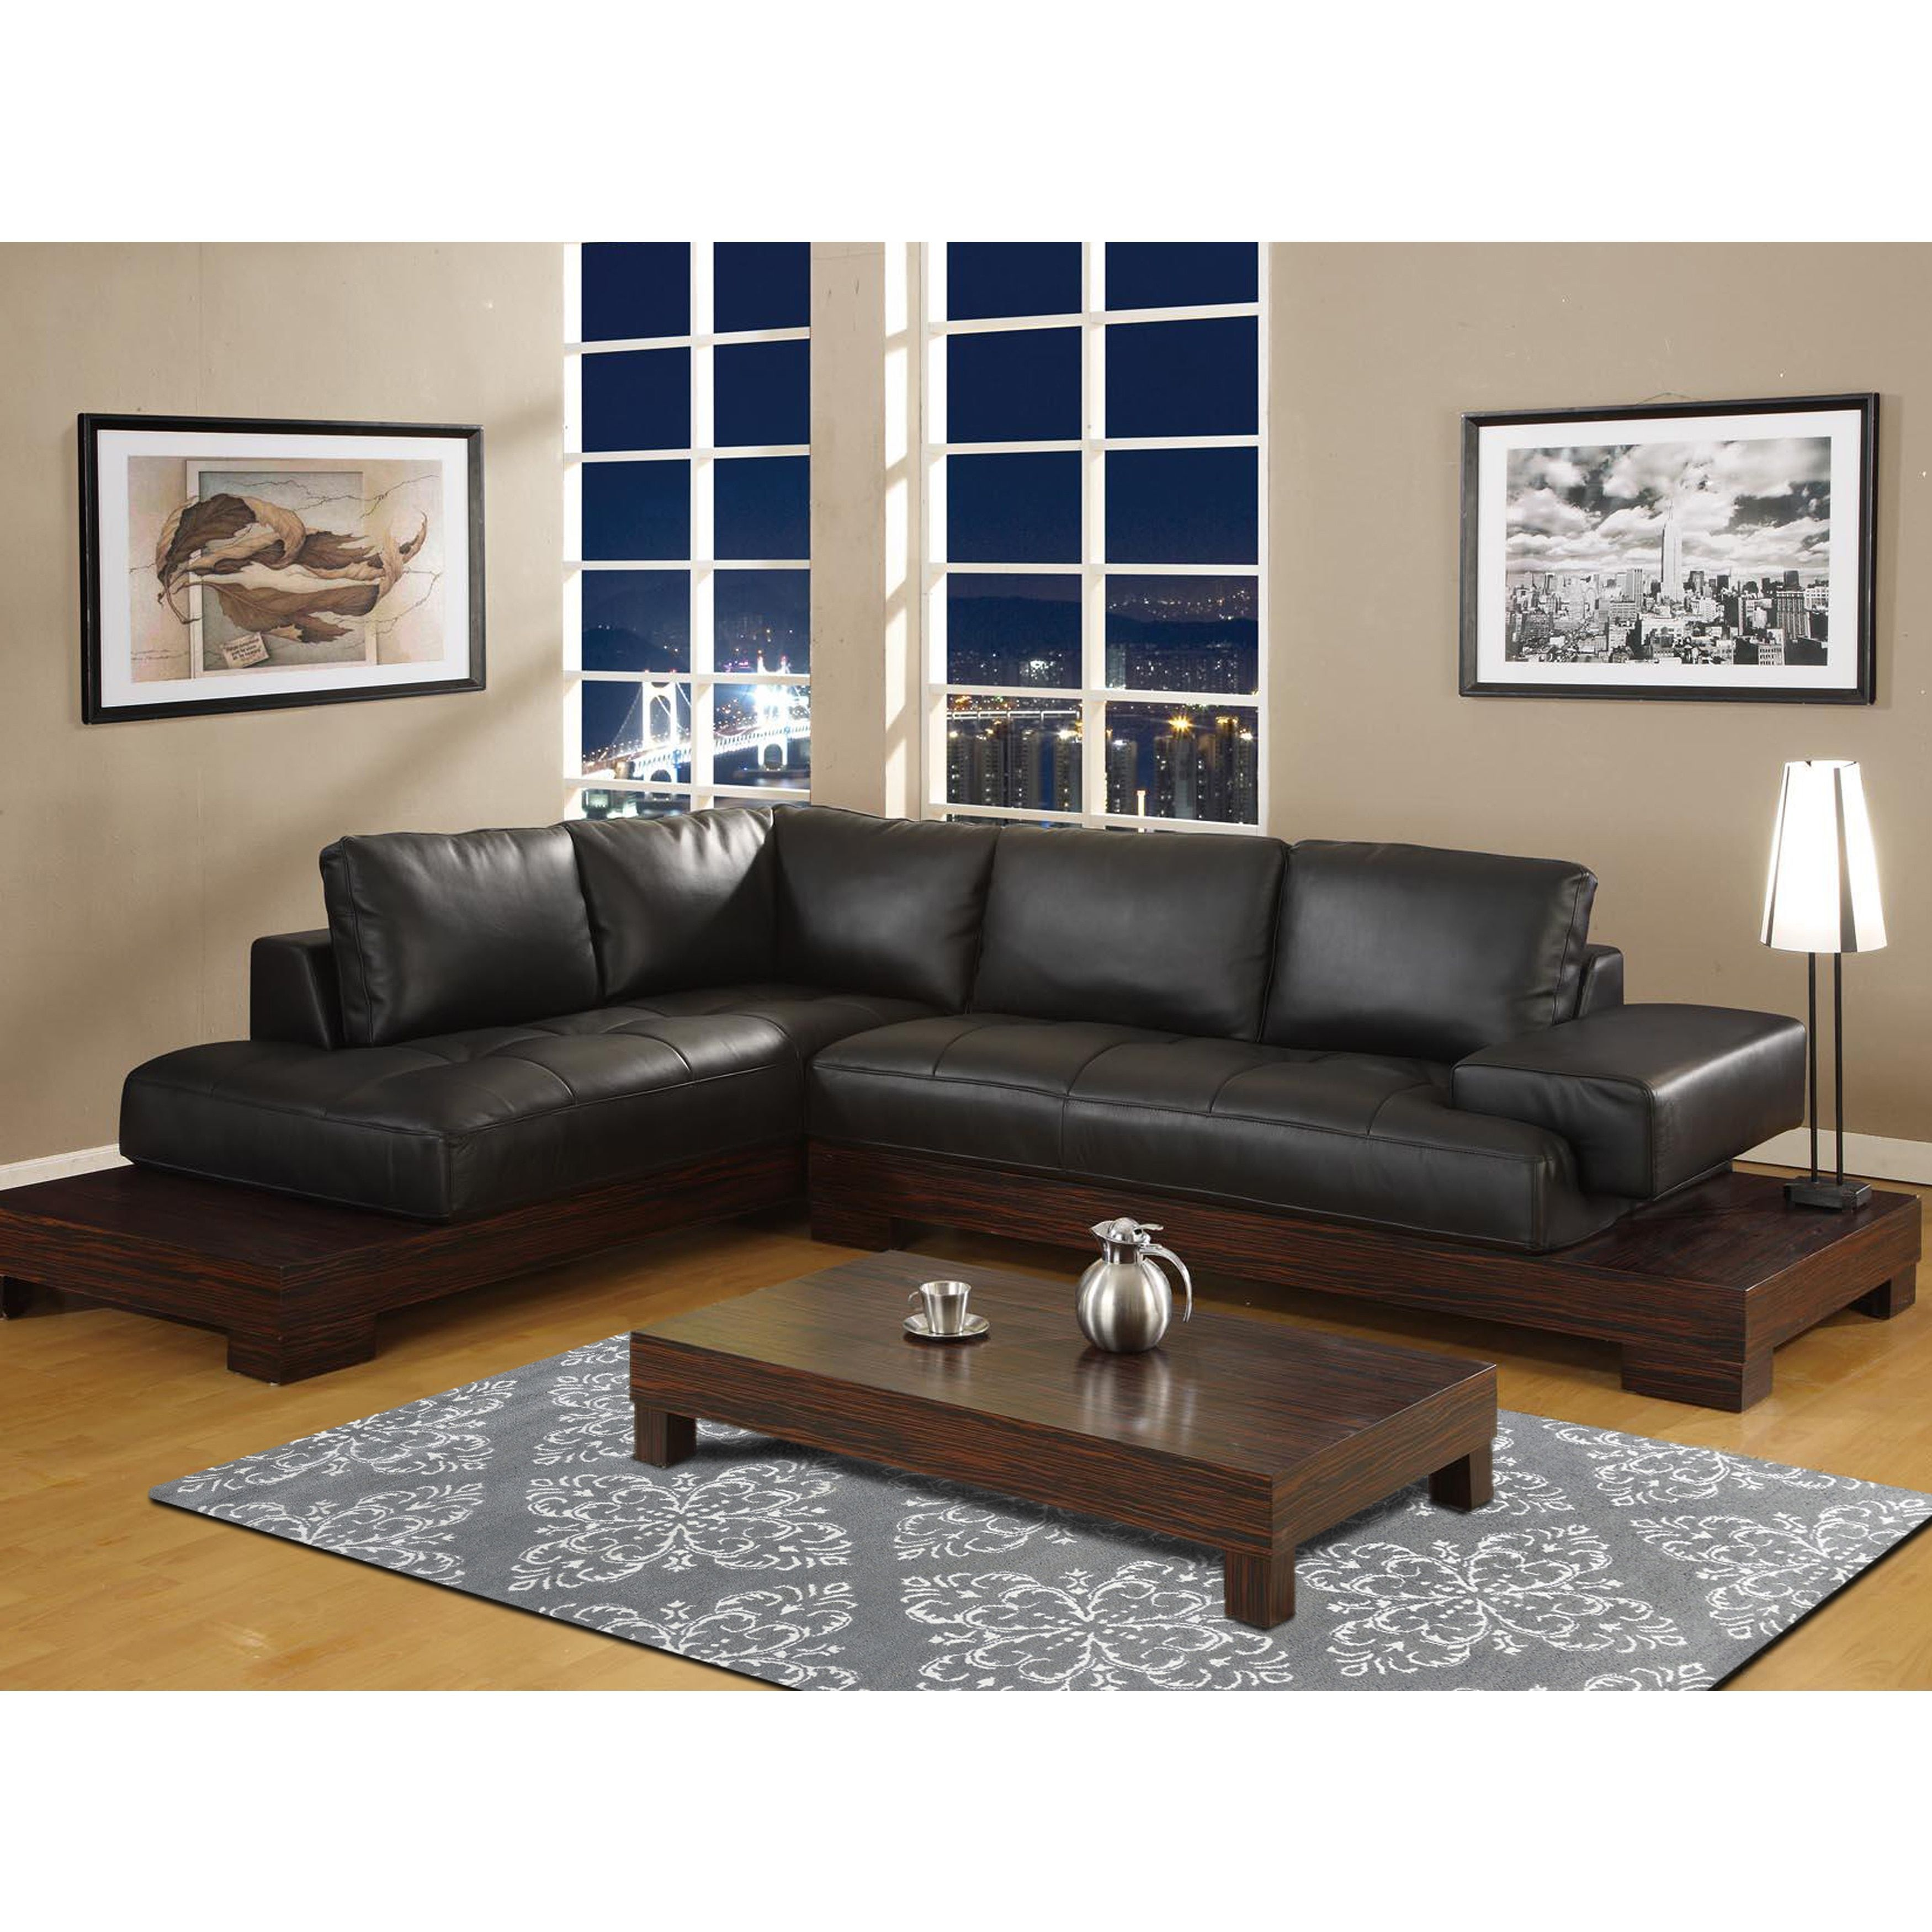 Leather Sofa New Zealand Hand Tufted Saint Thomas Steel Blue Blended New Zealand Wool And